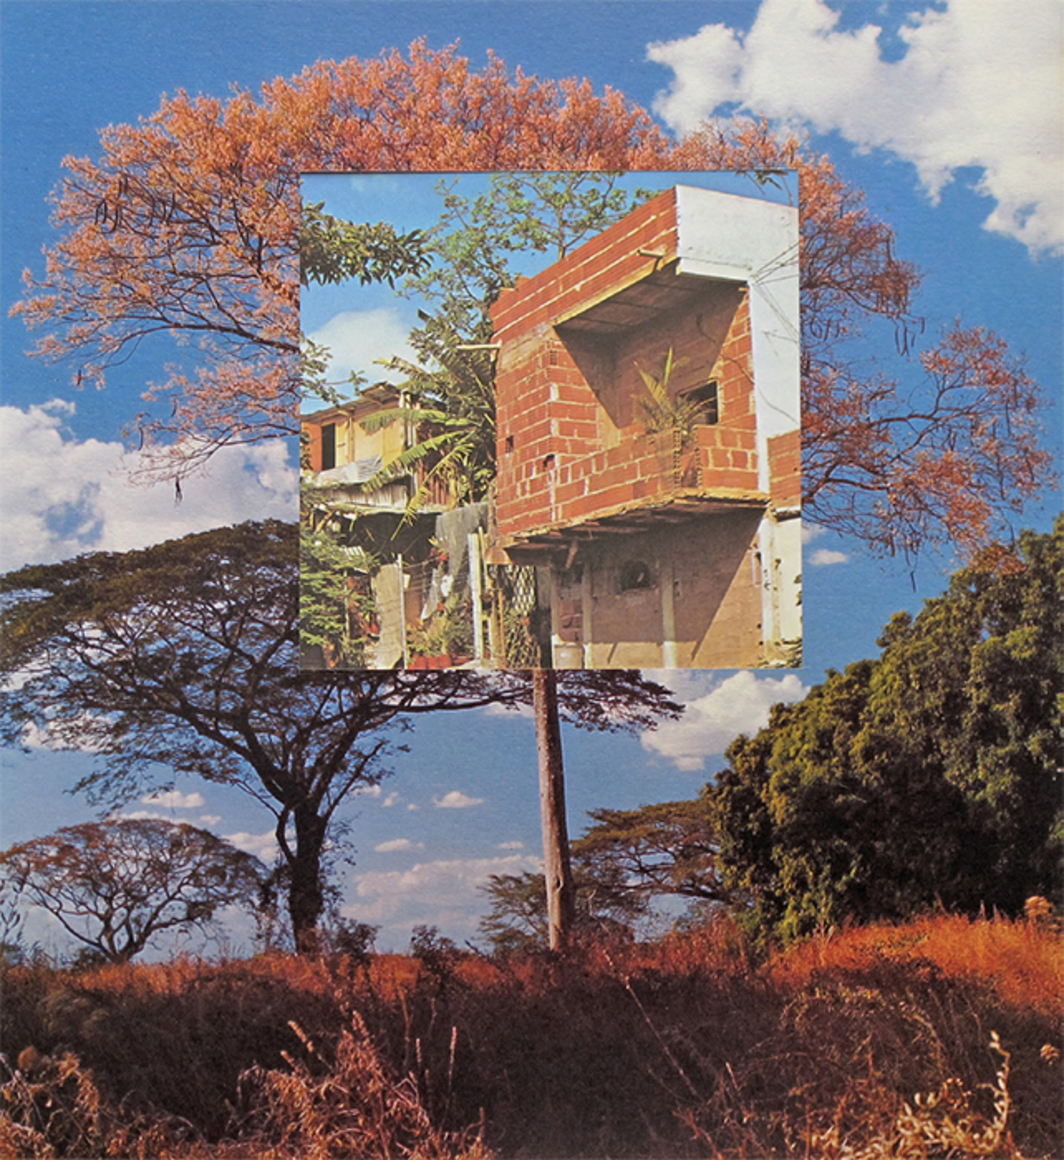 "Jorge Pedro Núñez, El sueño de una casa (Mari-Mari Rosado) (The Dream of a House [Mari-Mari Rosado]), 2011, collage on paper, 13 3/4 × 11 7/8"". From ""Home—So Different, So Appealing: Art from the Americas Since 1957."""